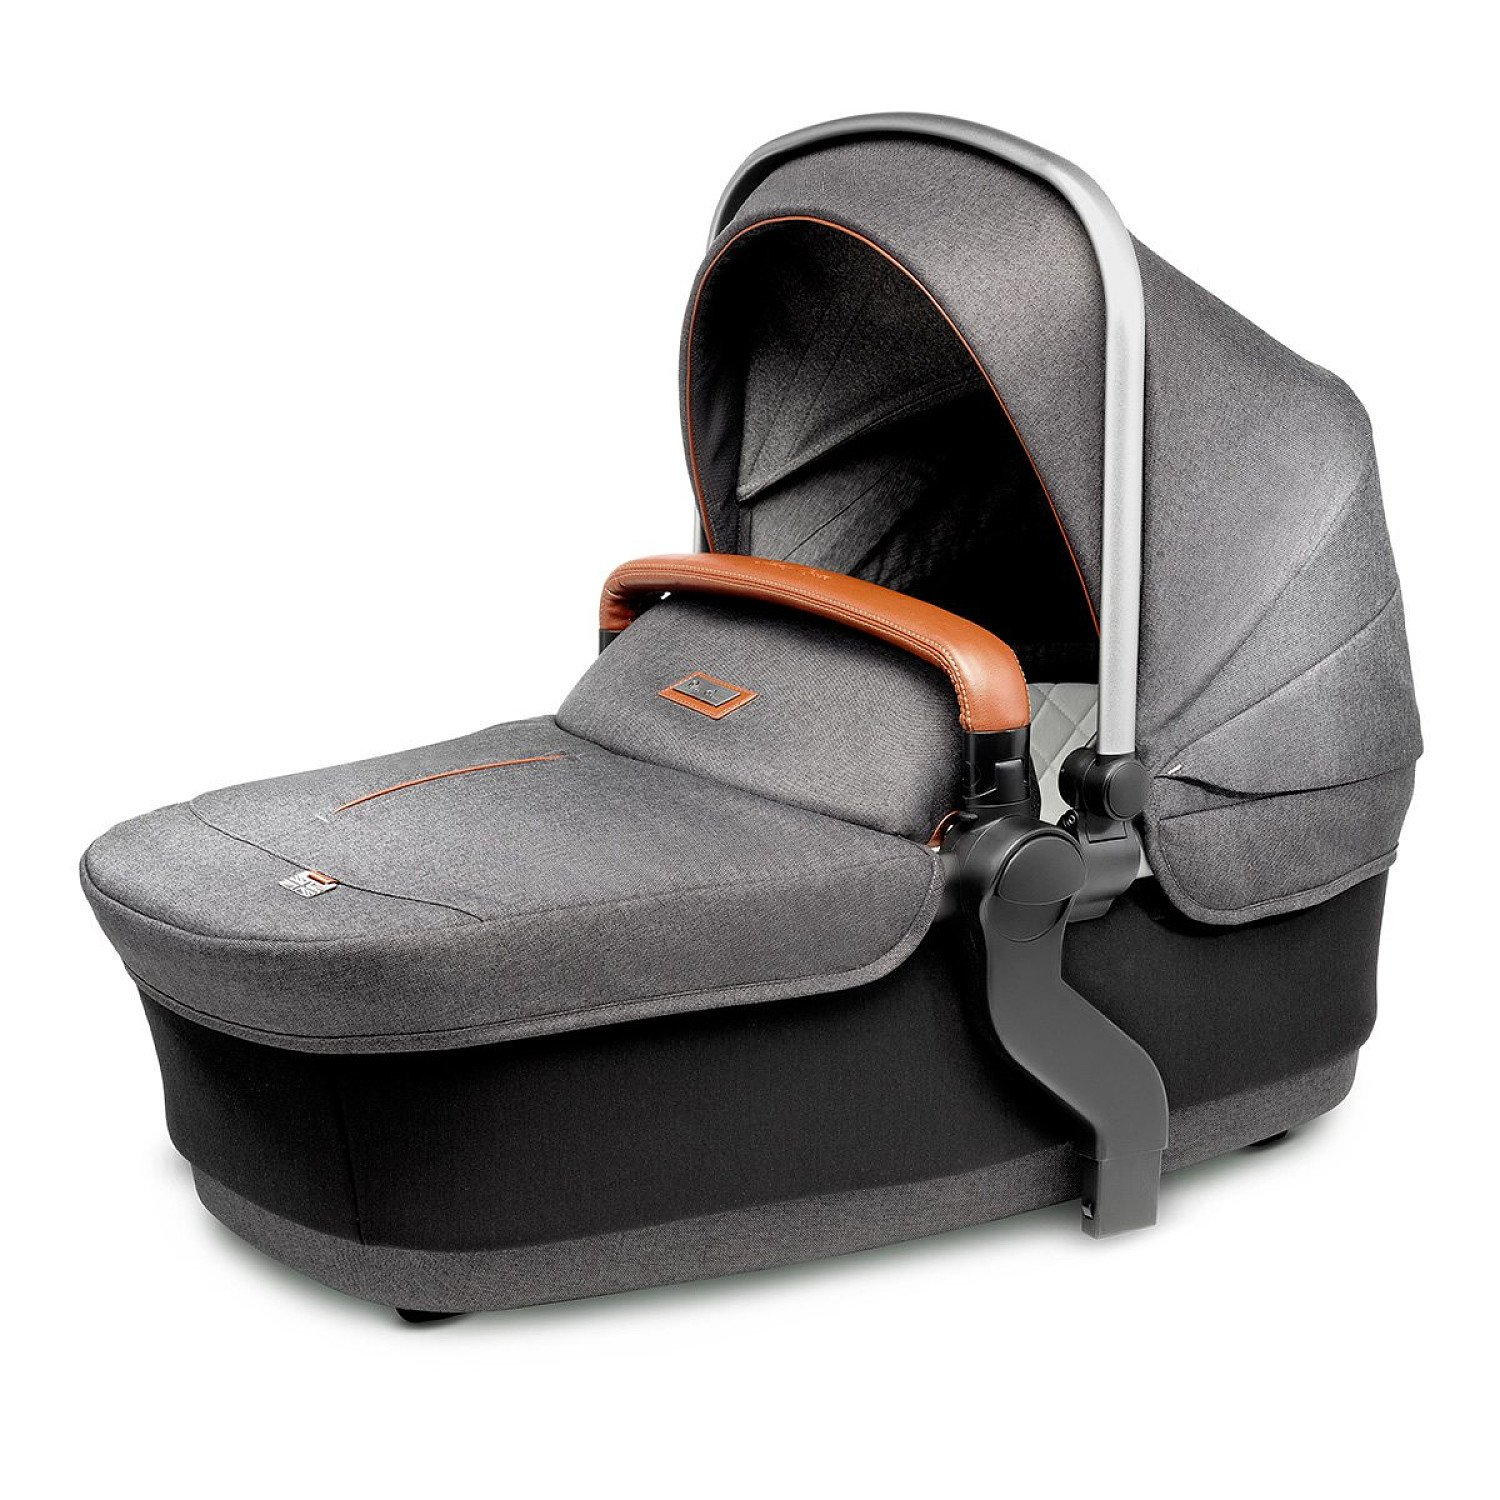 SAVE 20% - Silver Cross Wave Tandem Carrycot!